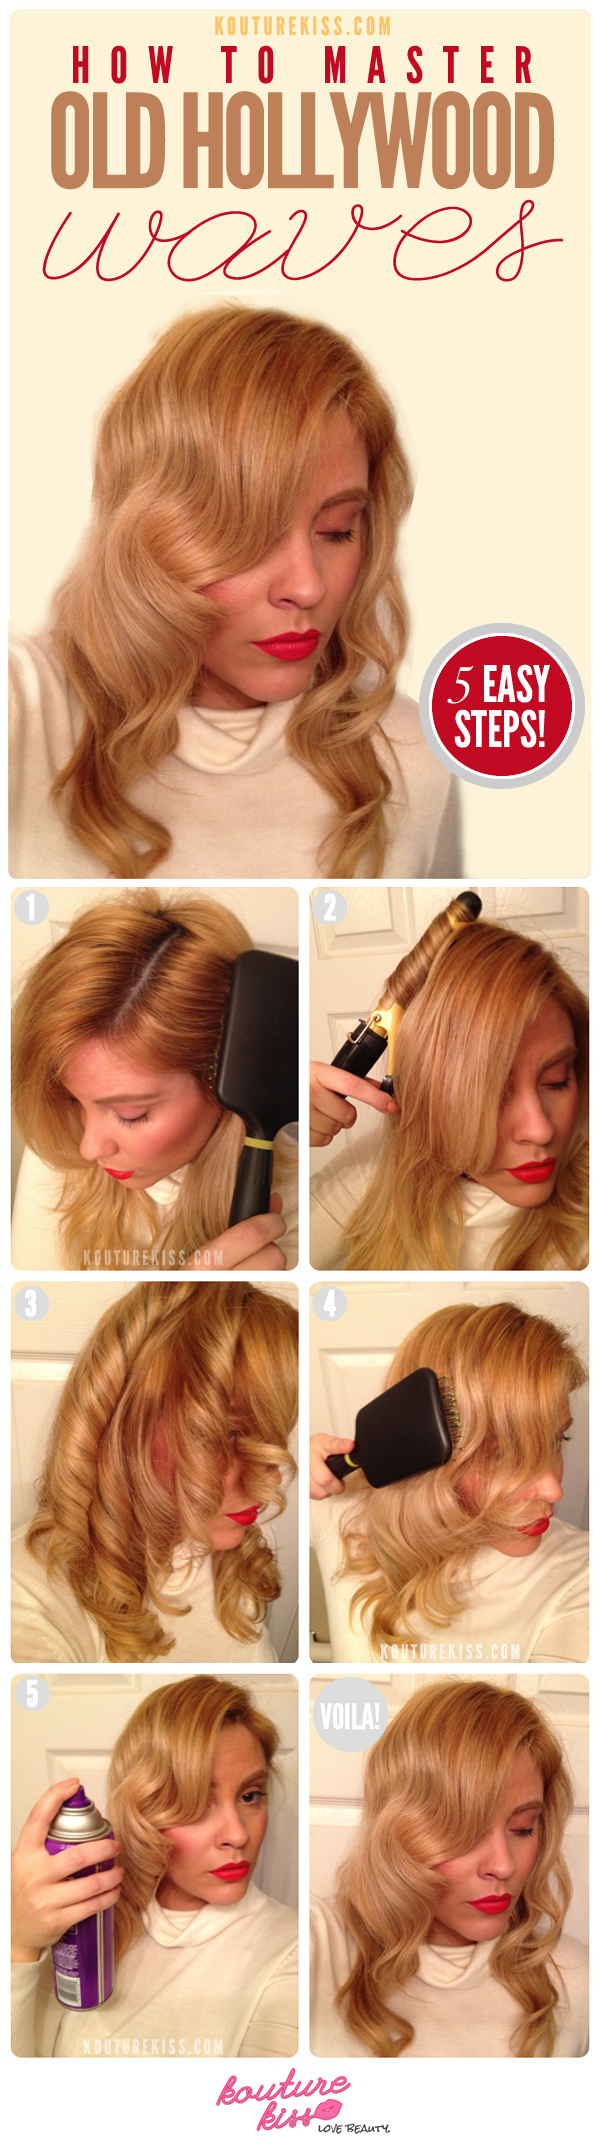 DIY Old Hollywood Waves Hairstyle Over